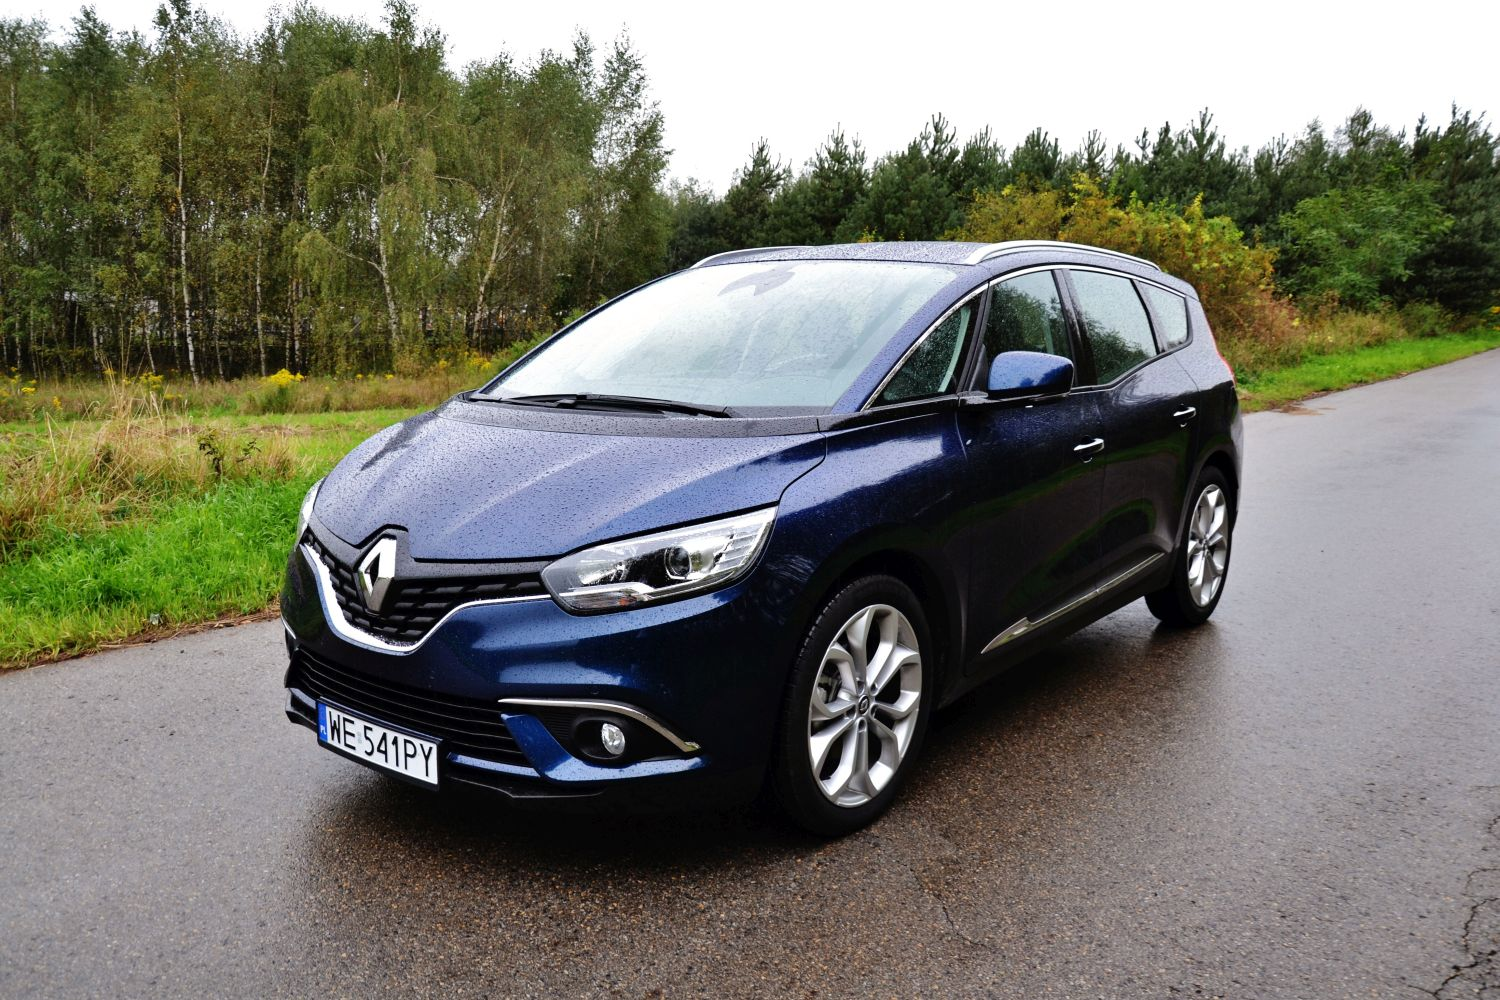 renault grand scenic dci 110 hybrid assist lekka ekologia namasce. Black Bedroom Furniture Sets. Home Design Ideas